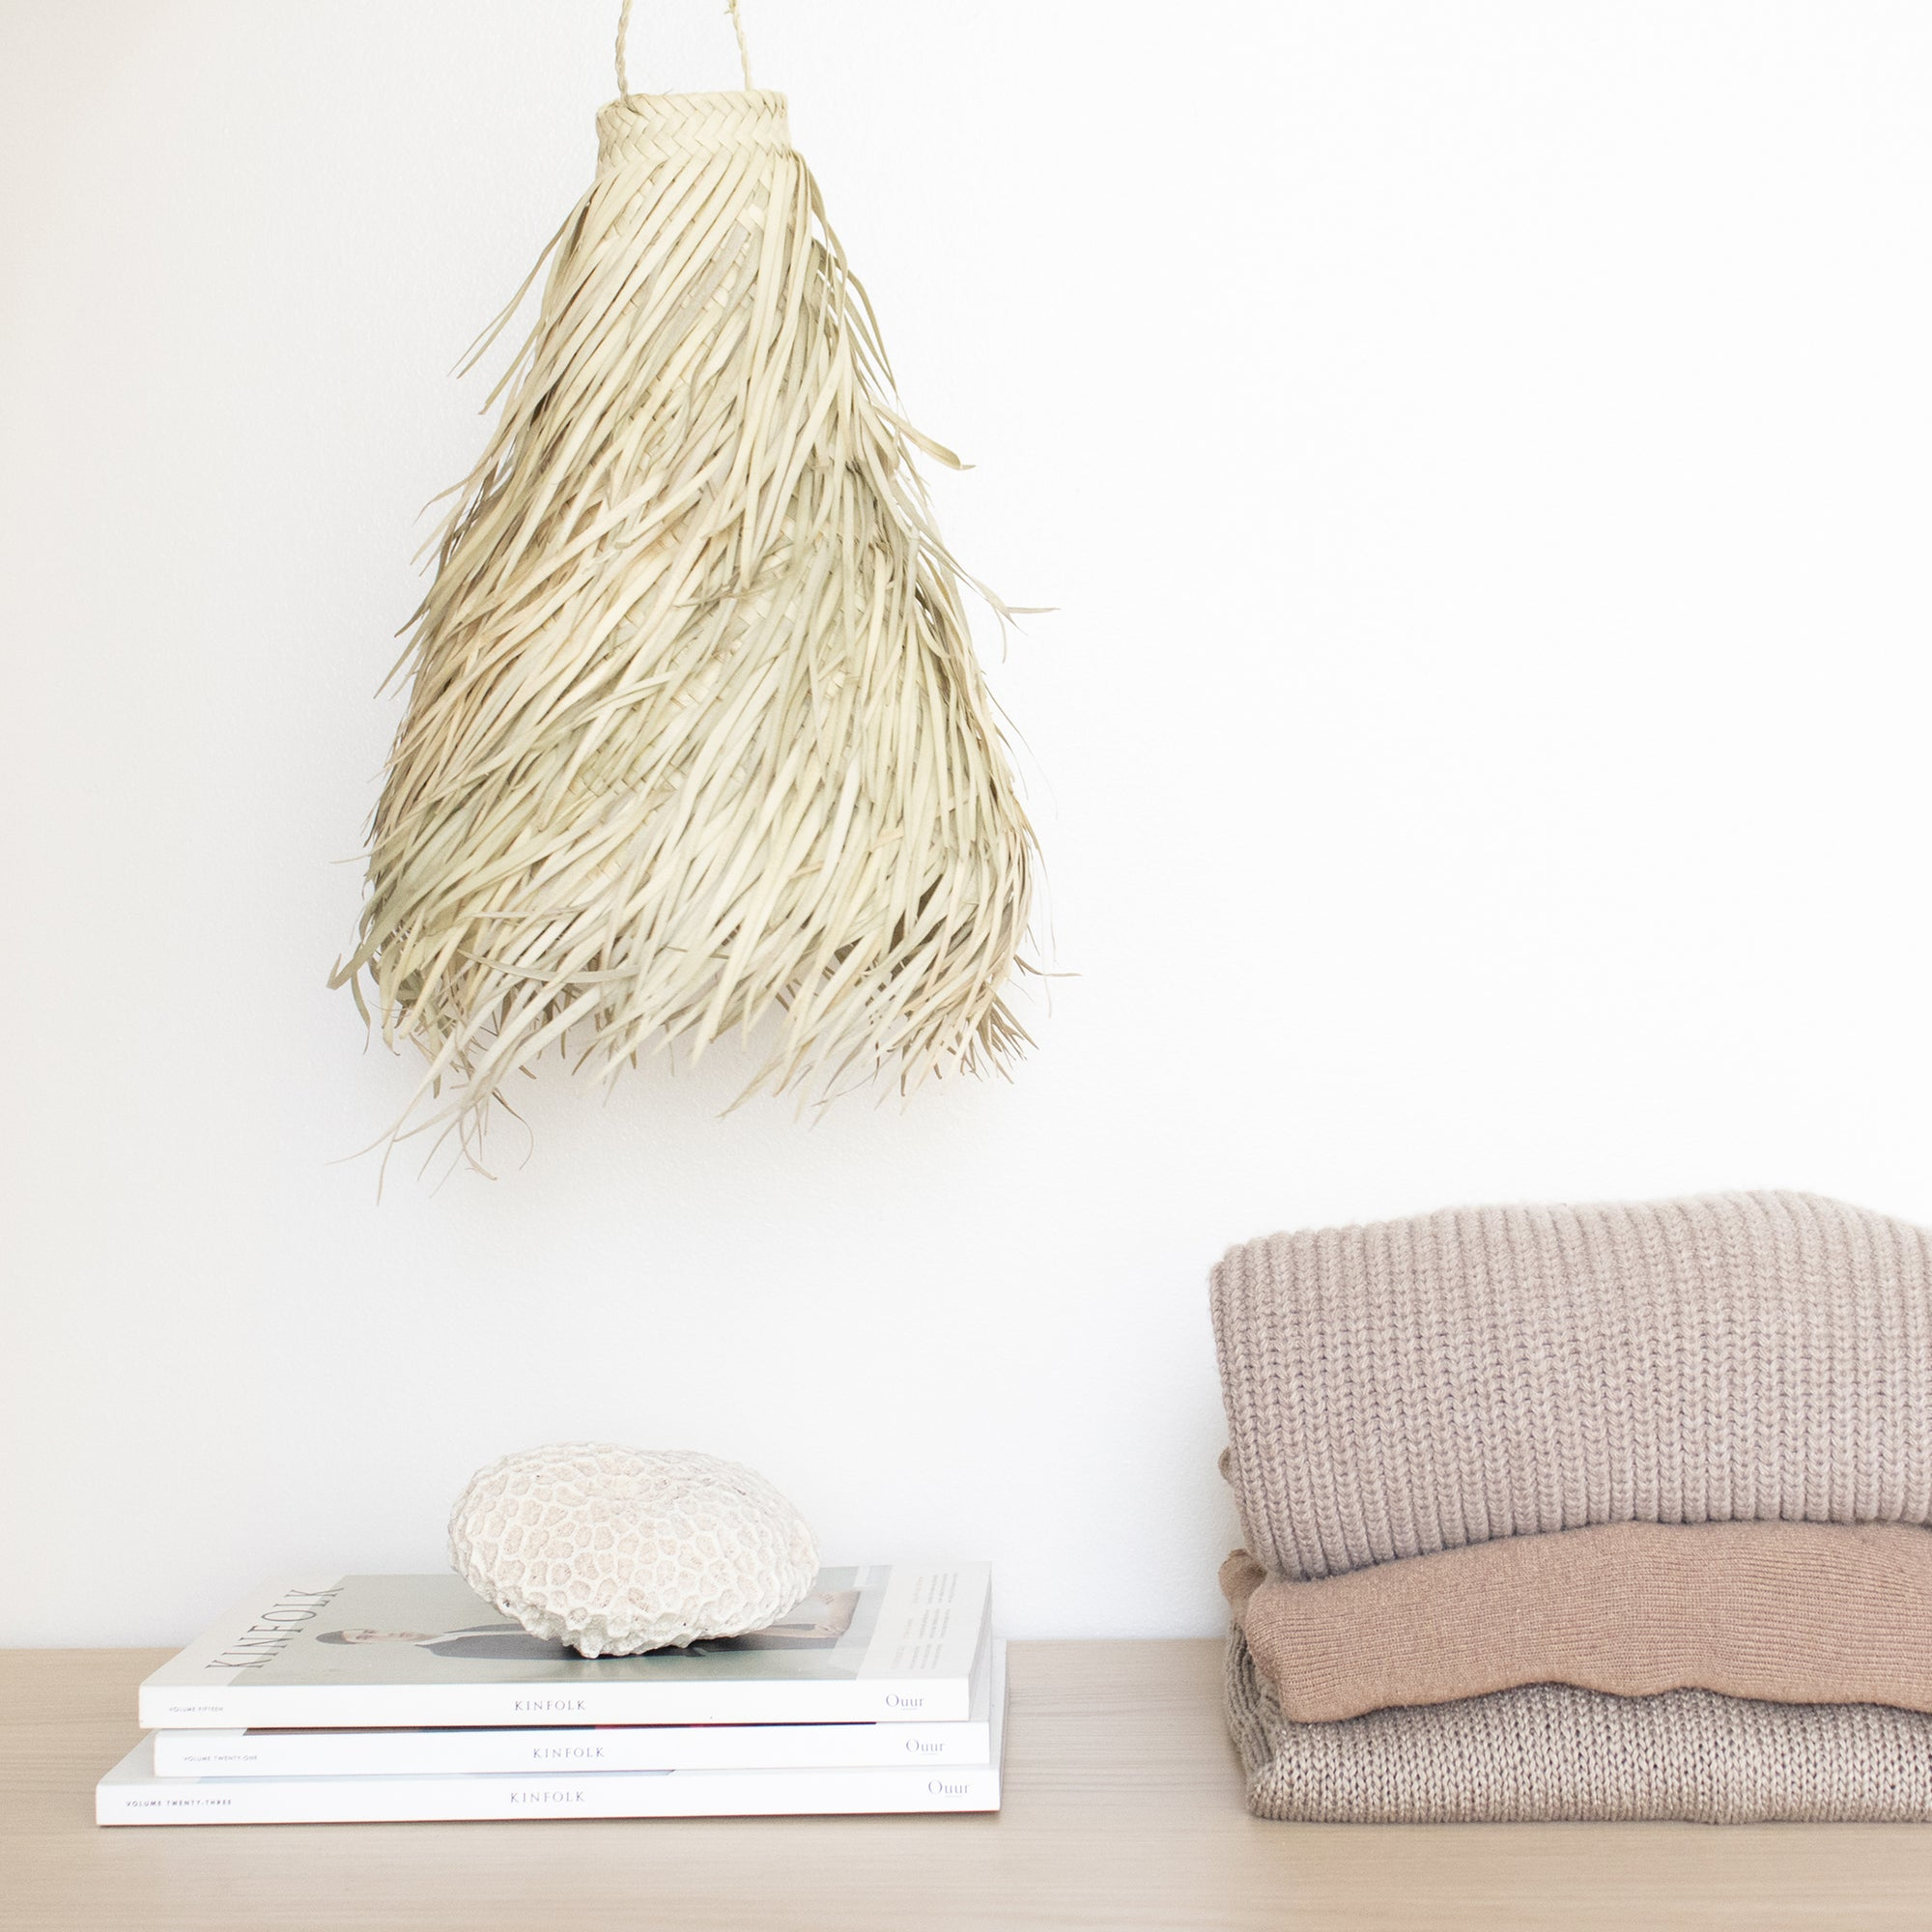 Fringed straw light pendant